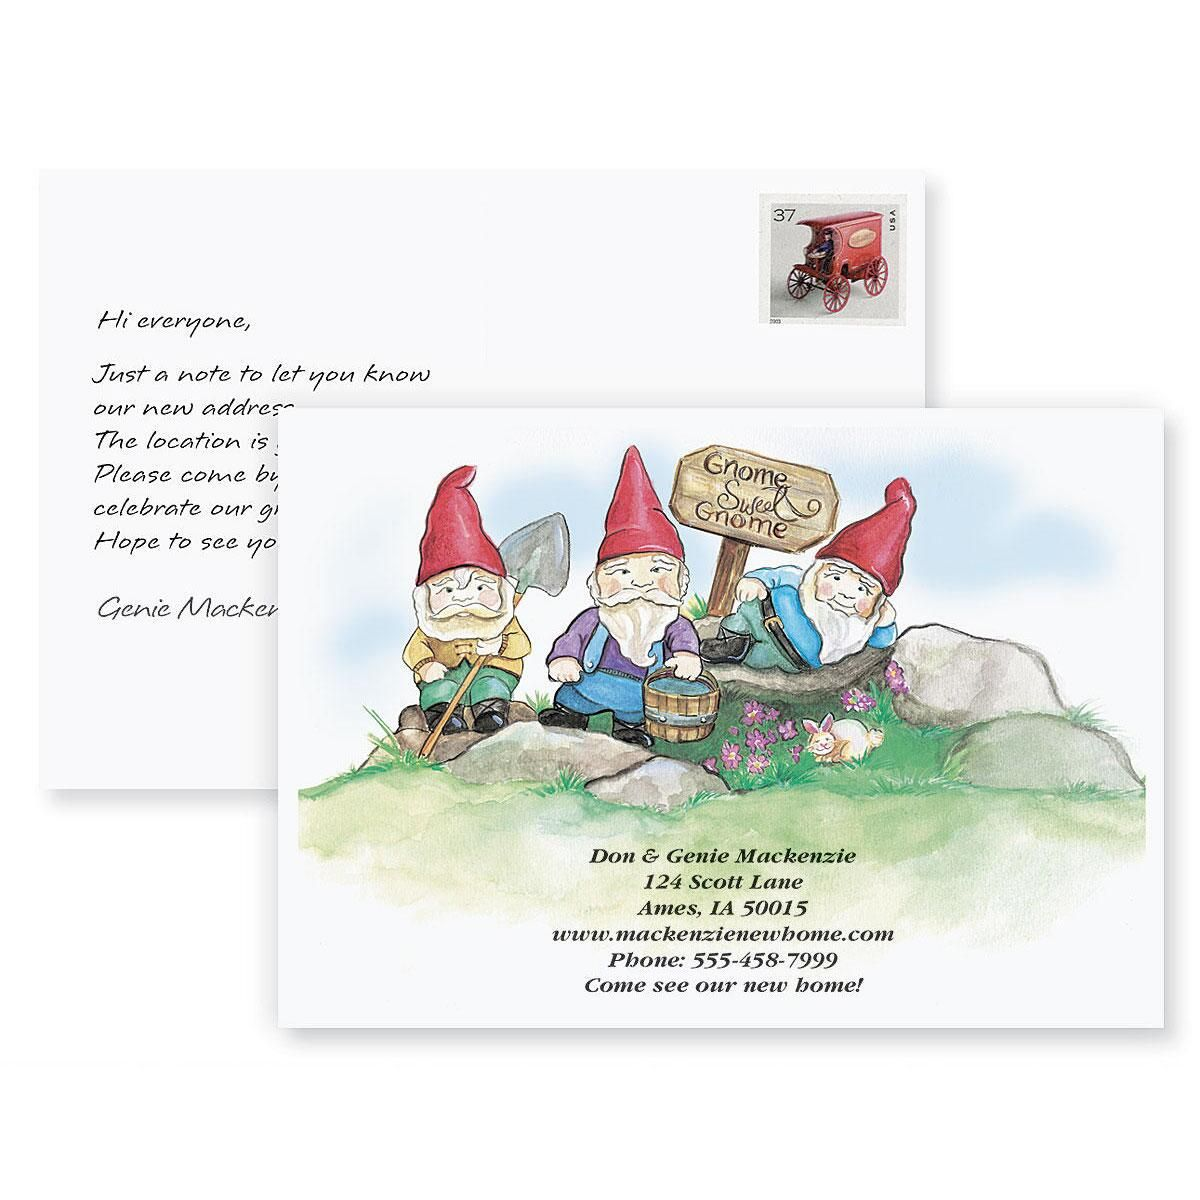 Gnome Sweet Gnome New Address Postcards | Colorful Images